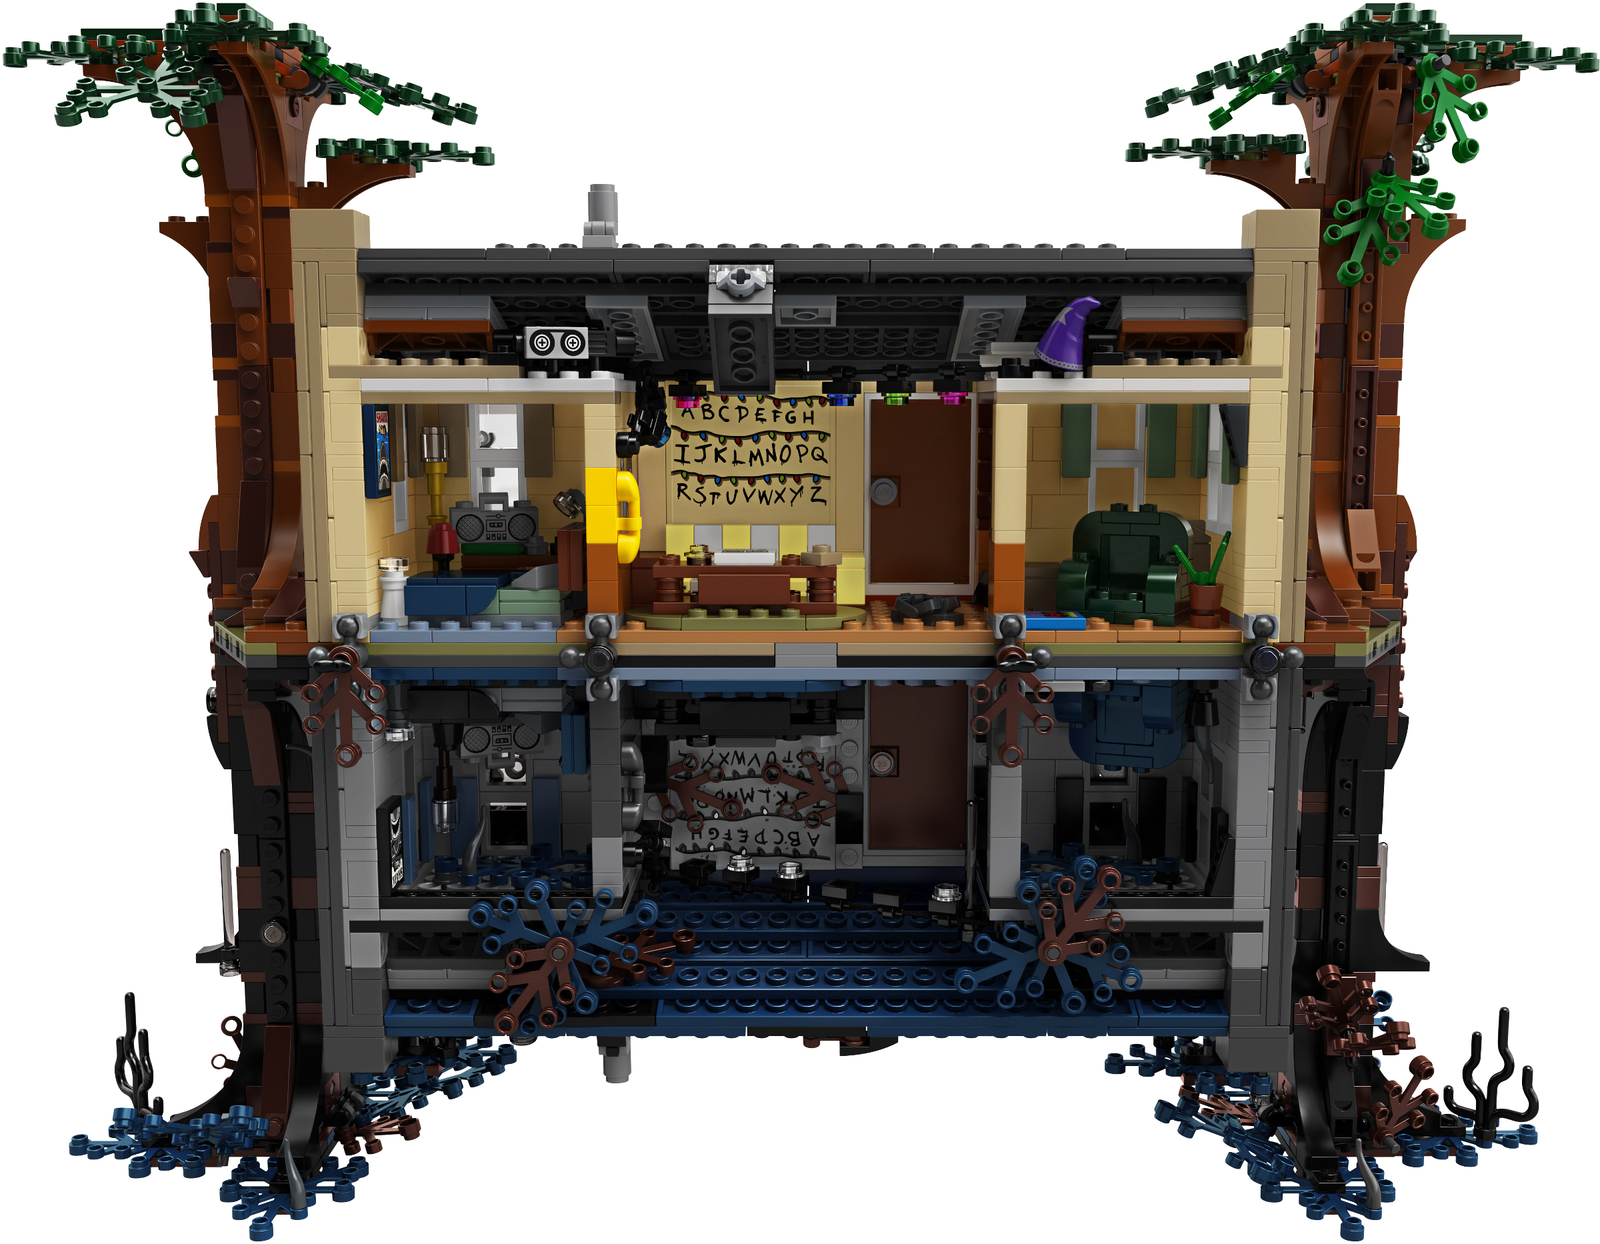 LEGO - The Upside Down image